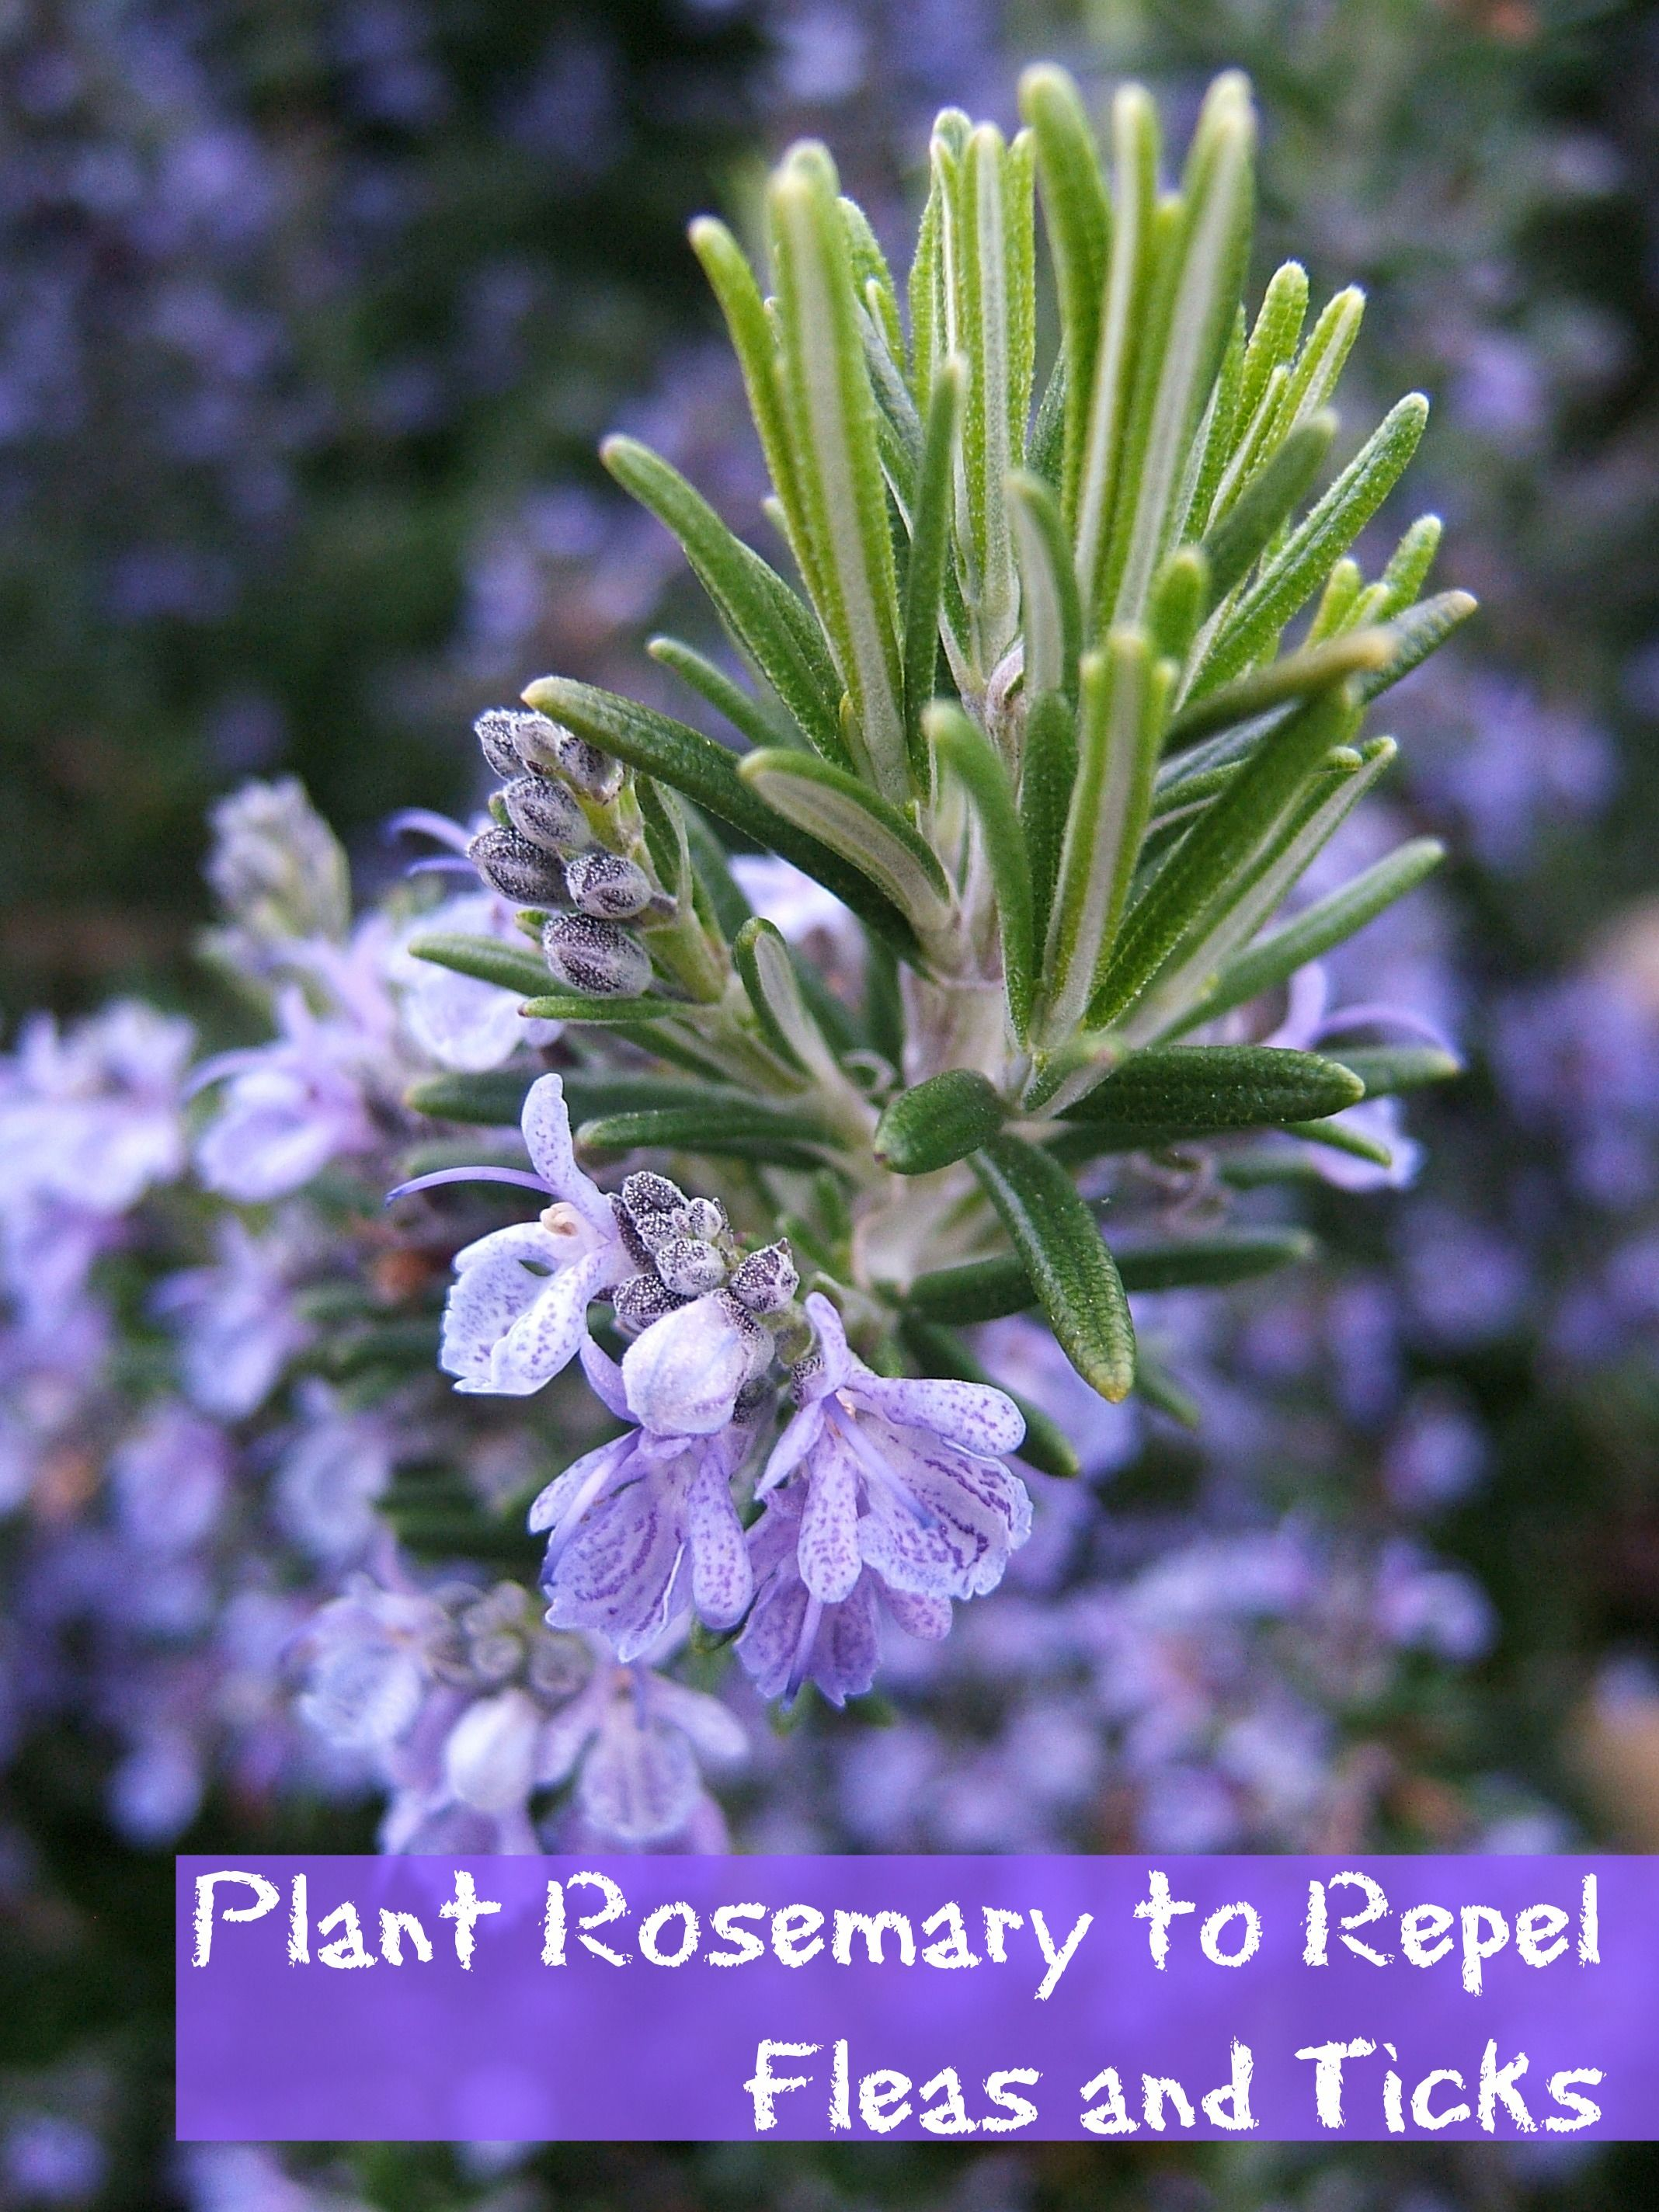 Keep Pests Off Pets Plants To Grow That Repel Ticks And